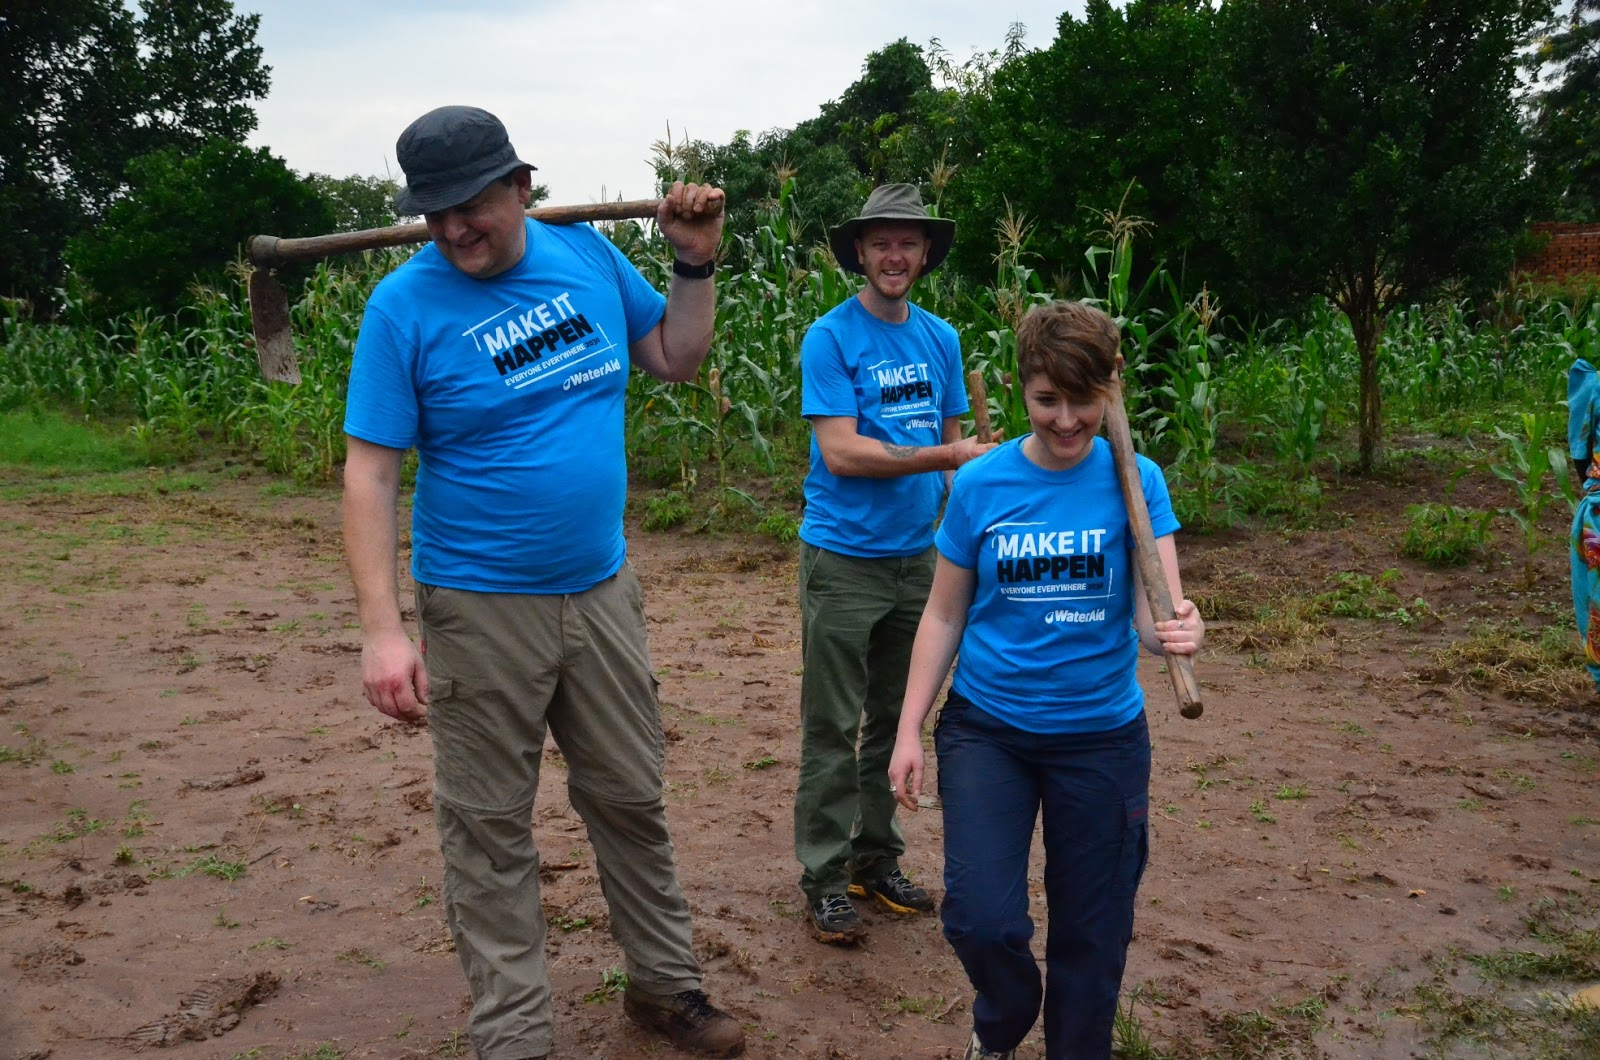 Wateraid Supporters From Dwr Cymru Welsh Water Visit Nameje Village Uganda A Day Life Of A Rural Family With Out Safe Water And Toilets